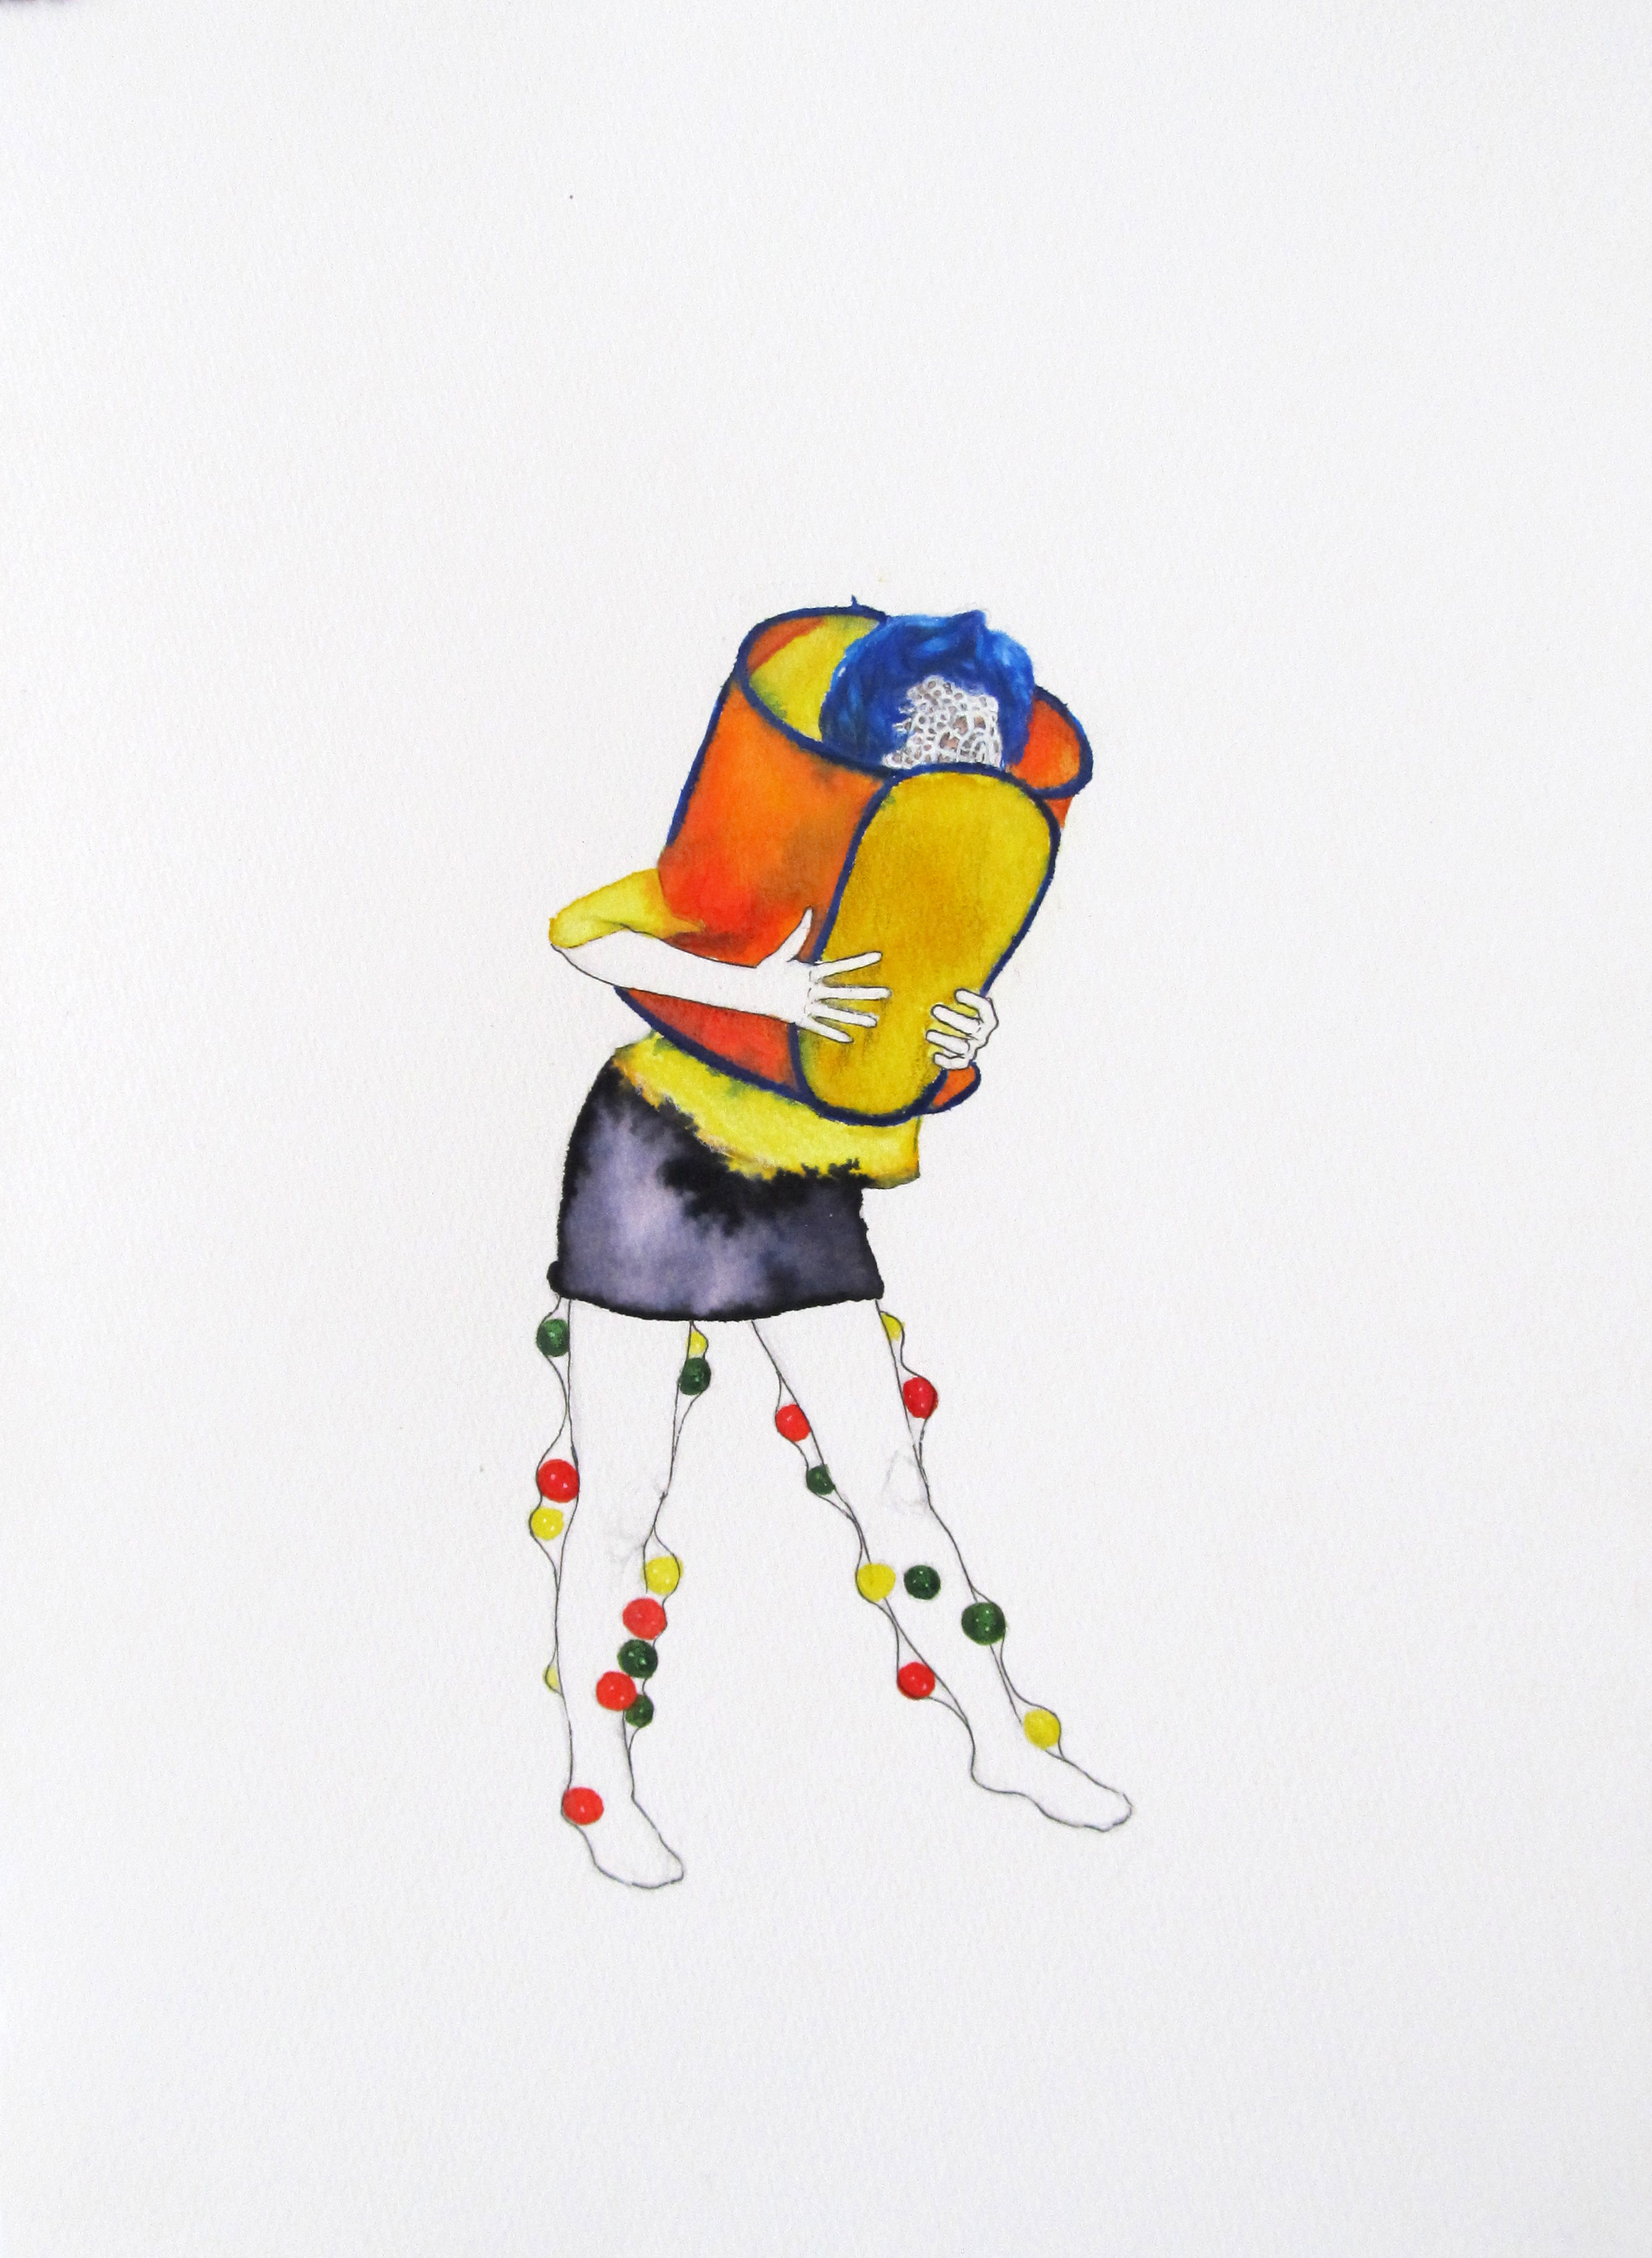 The Introverted Extrovert (you know her type) / 24 x 34 cm / Colored pencil & ink on paper